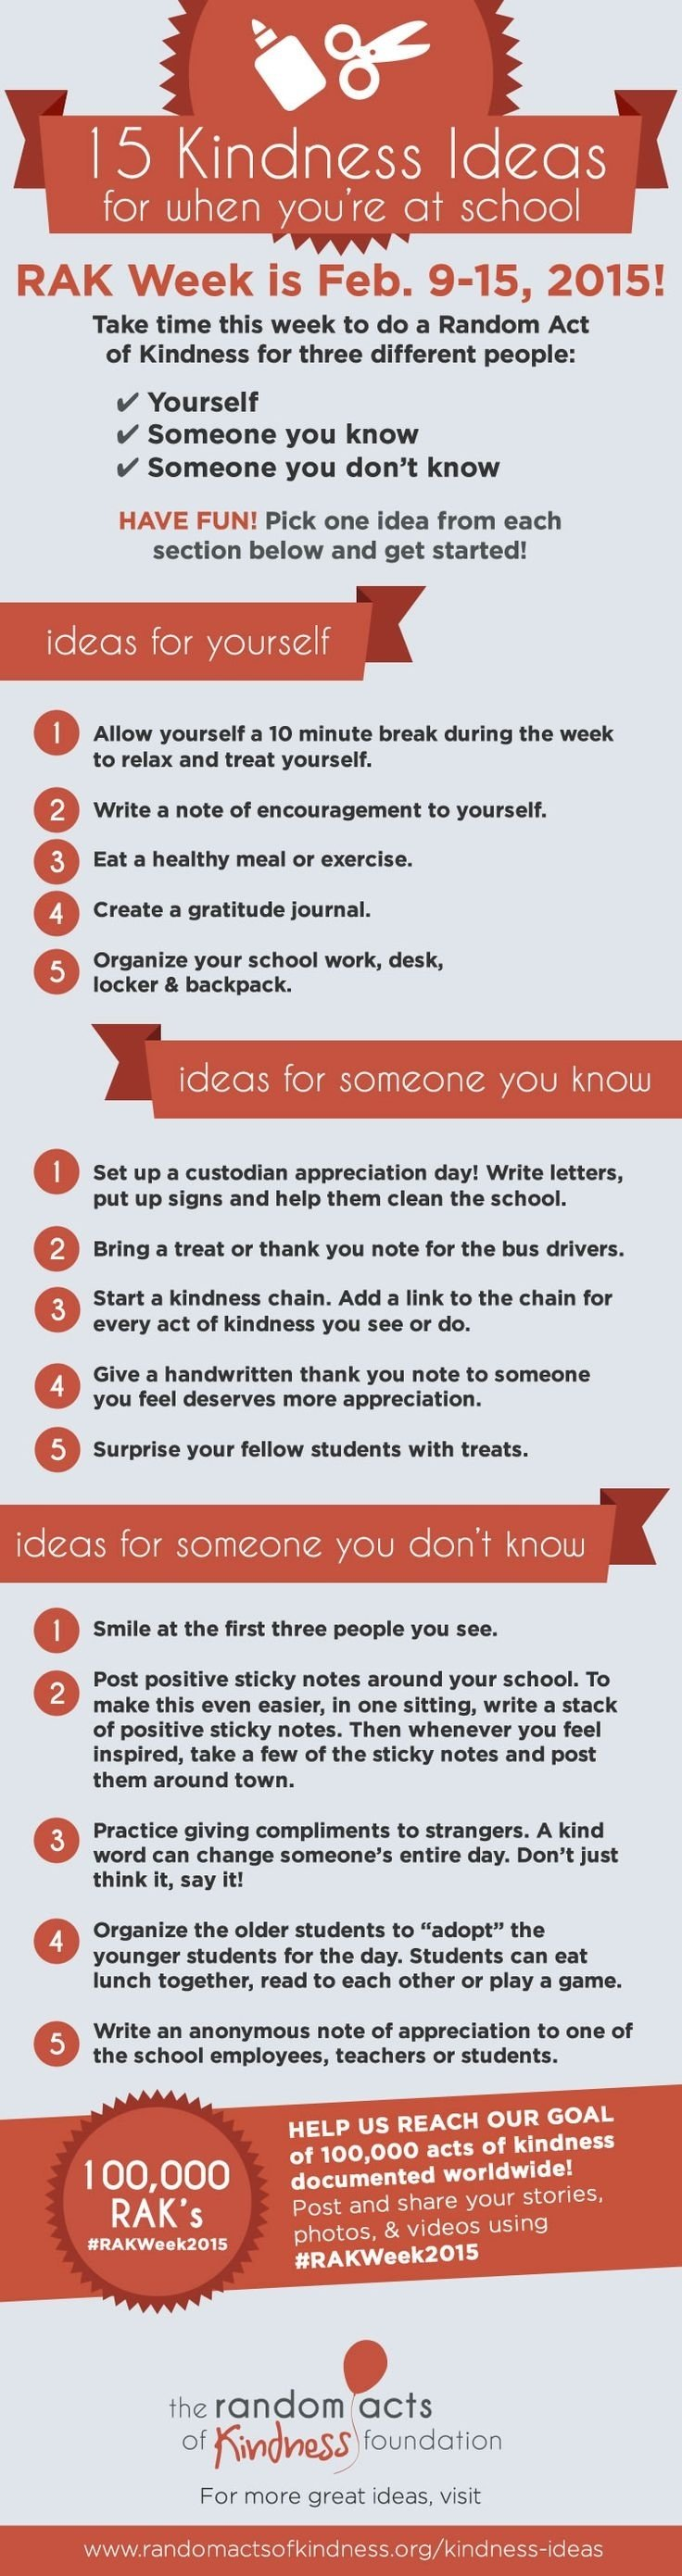 10 Fashionable Service Project Ideas For Highschool Students 86 best service project ideas images on pinterest ideas for 2020